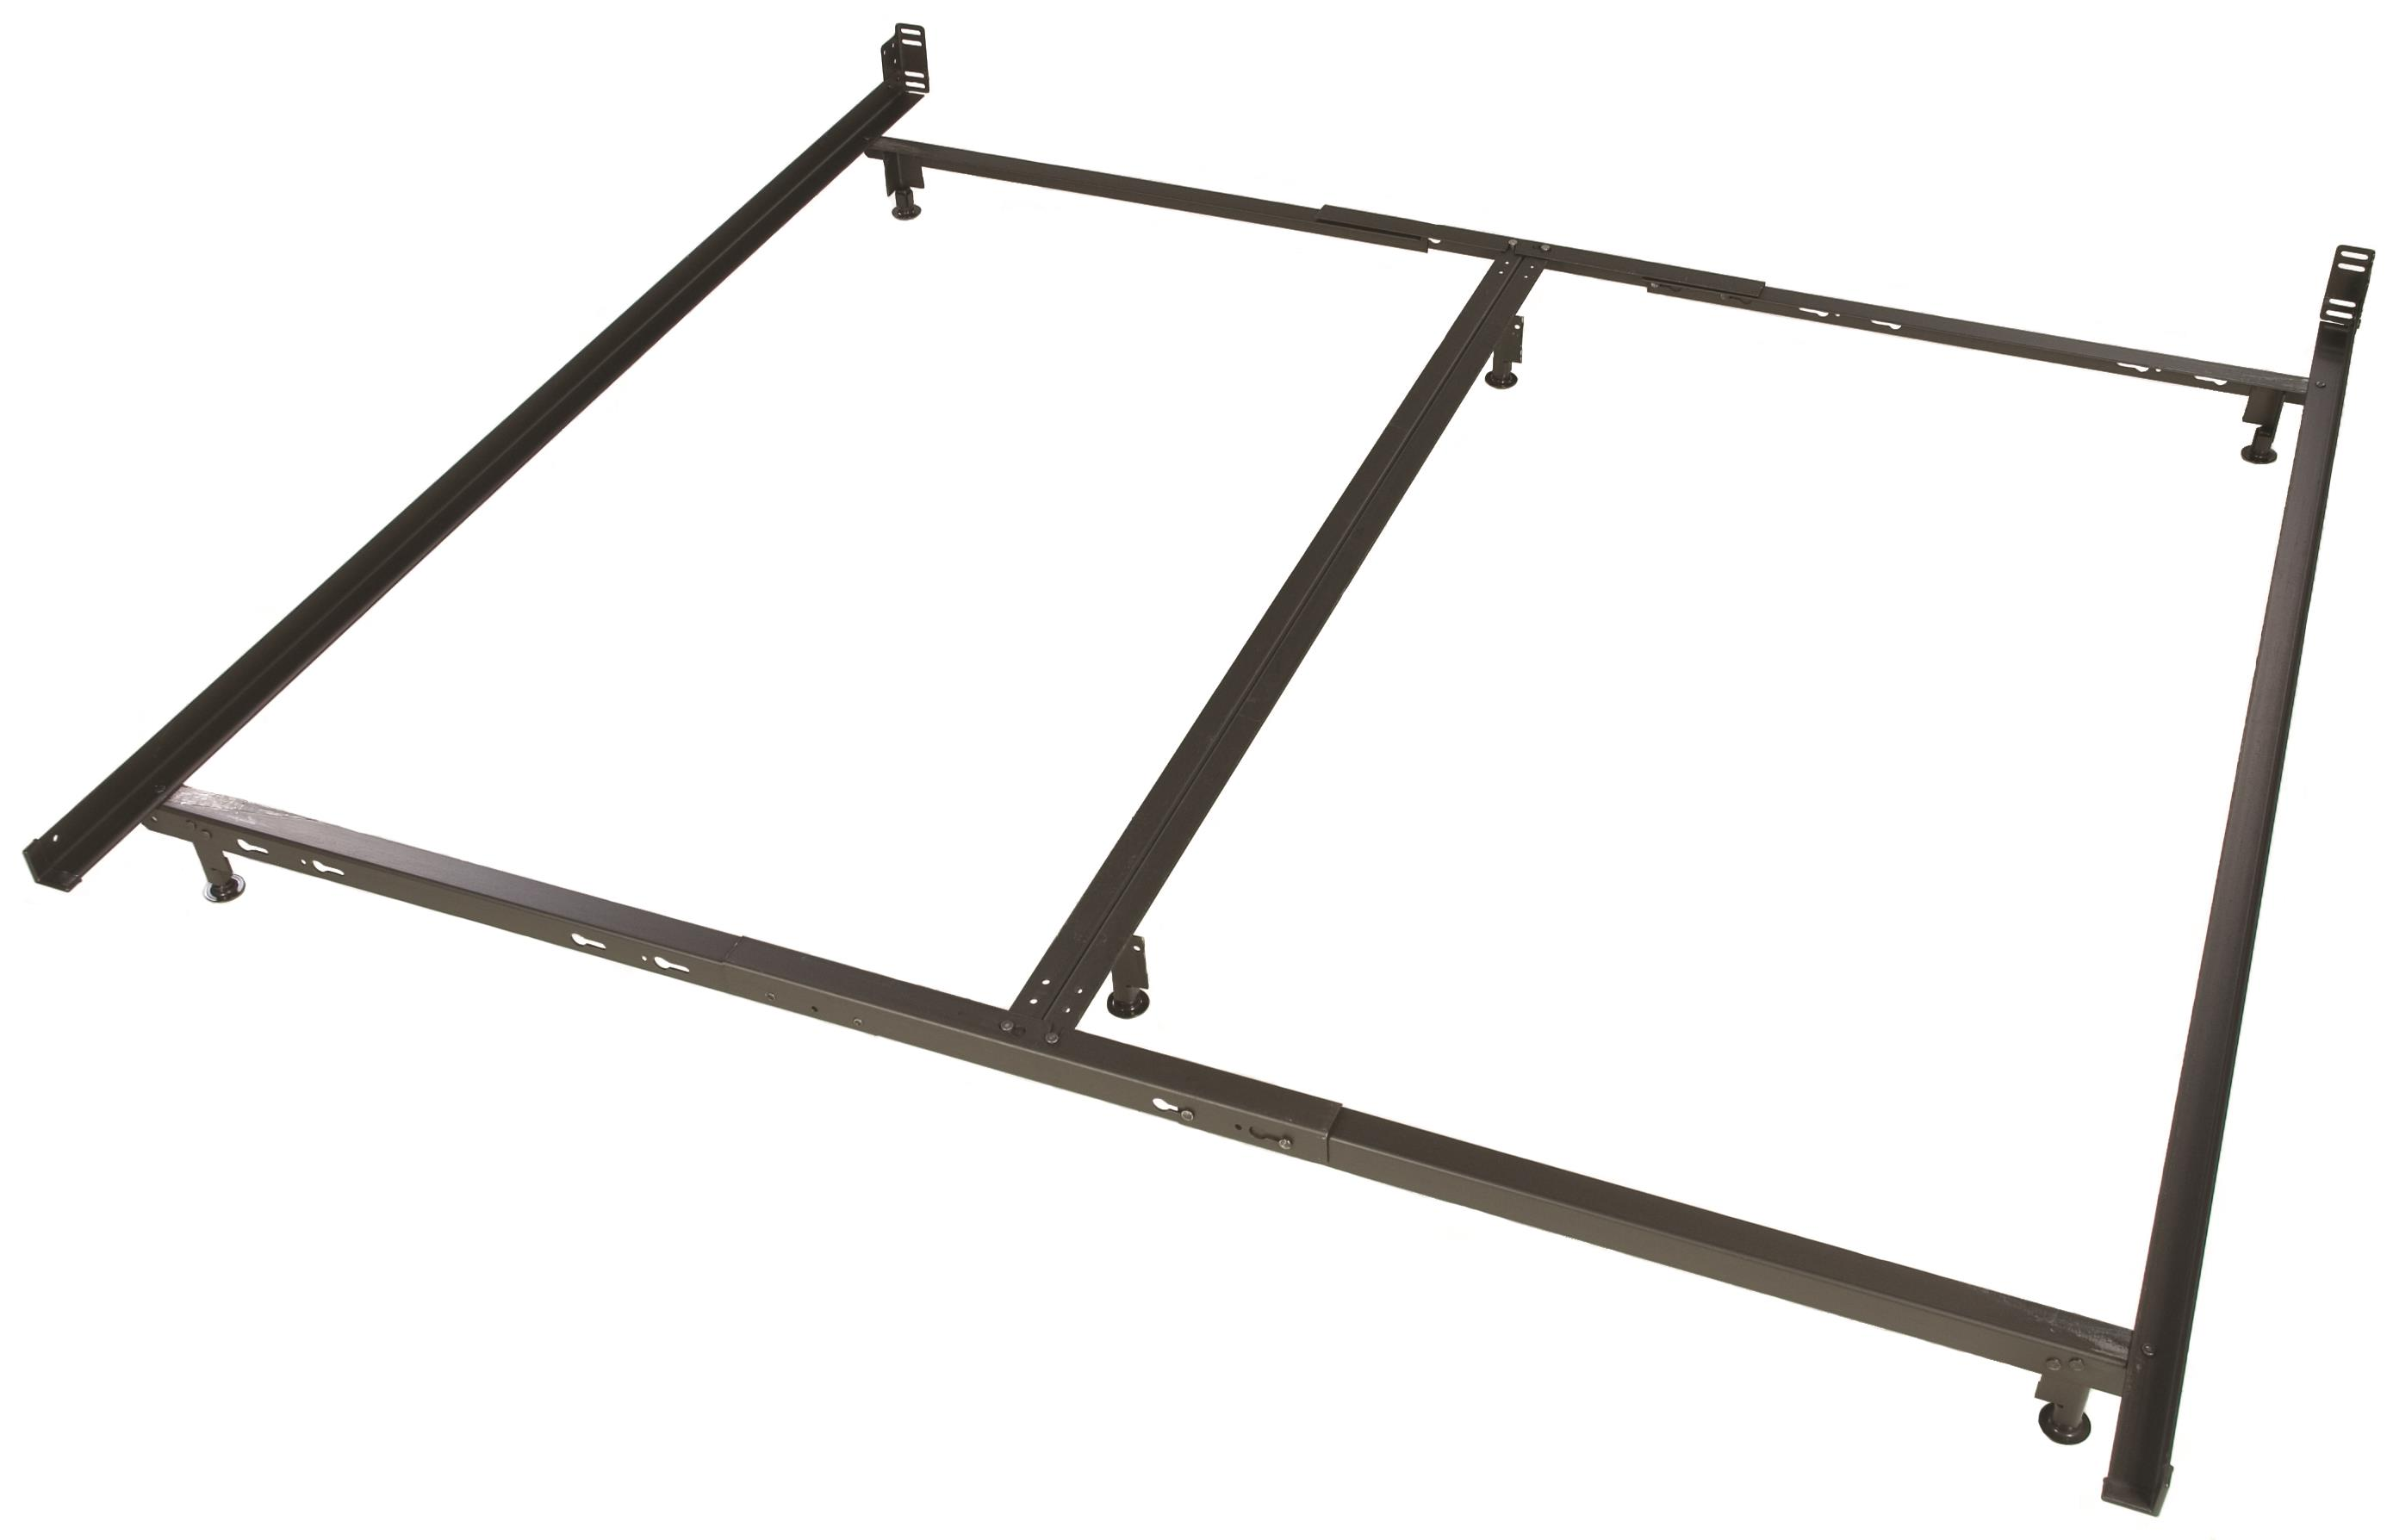 Glideaway Low Profile Bed Frames 6 Leg Low Profile King Frame - Item Number: LB44